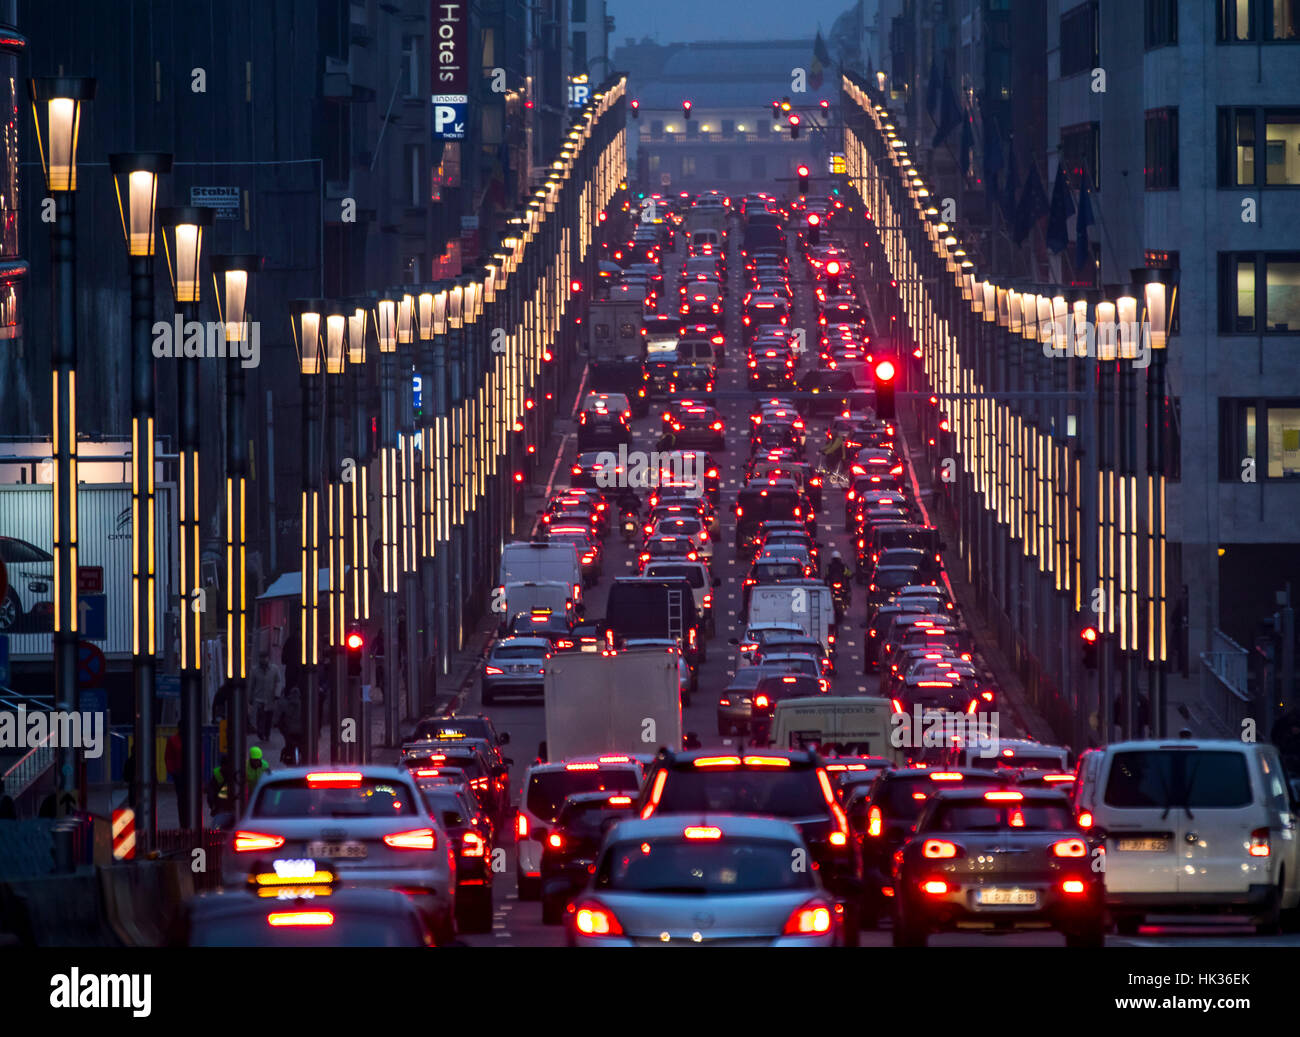 Evening intercity traffic in Brussels, Rue de la Loi, leads from the European quarter to the city center, traffic - Stock Image